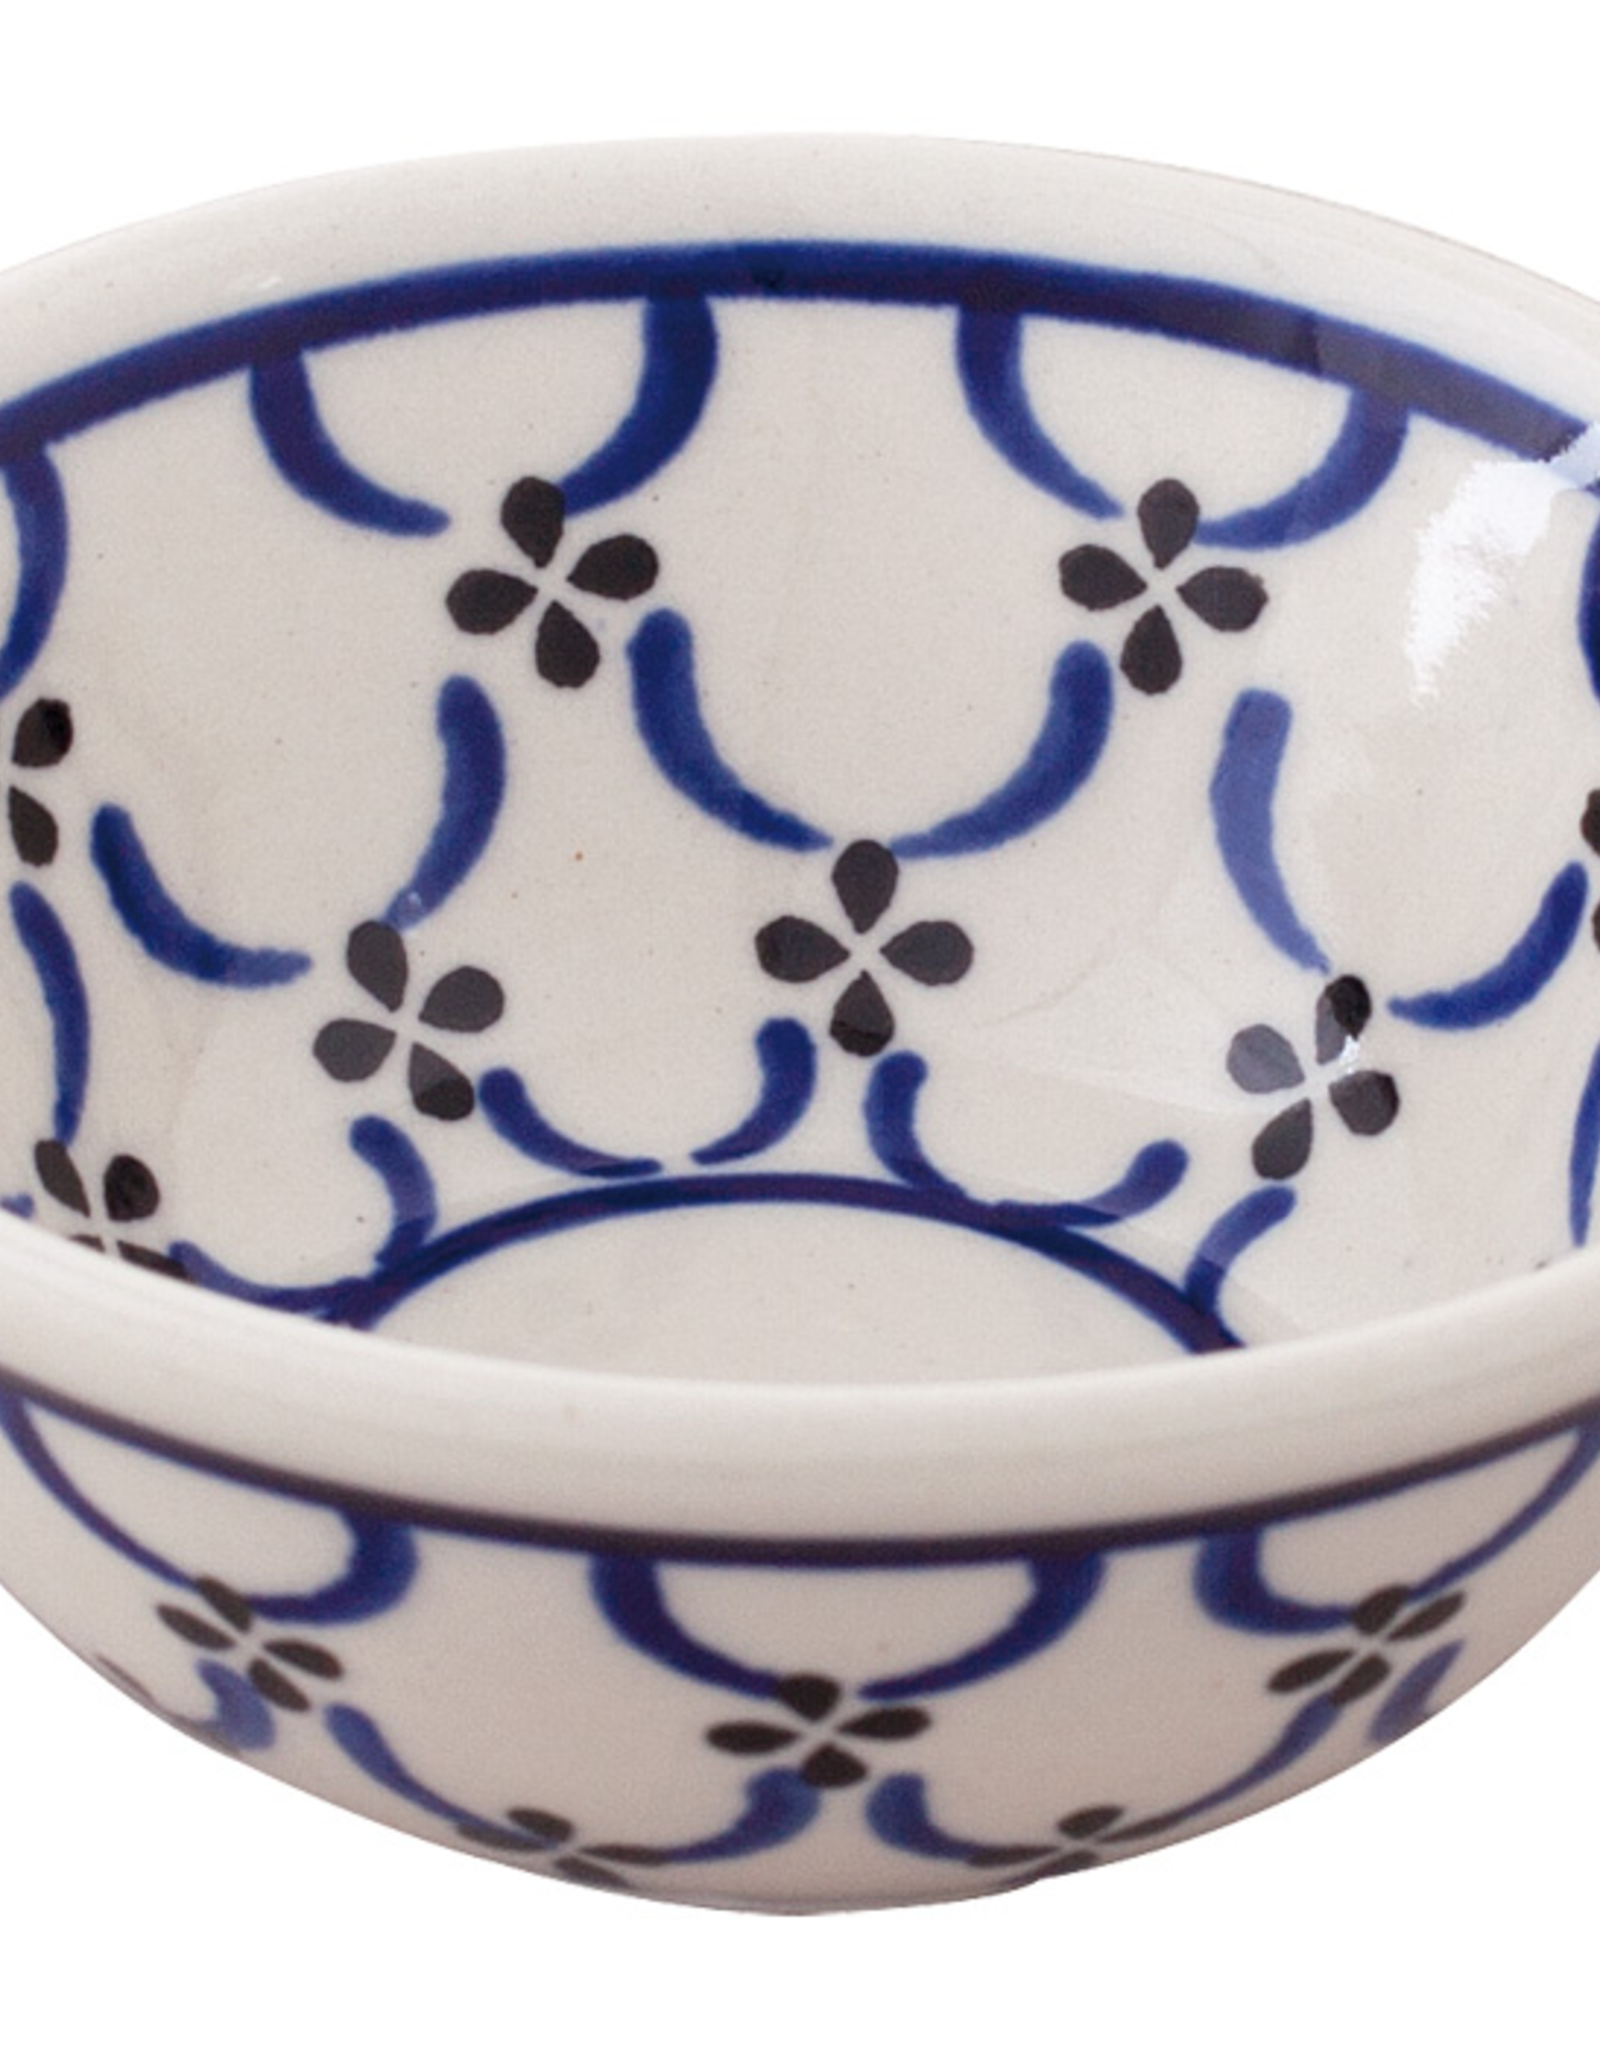 Redecker Redecker Ceramic Shaving Soap Bowl-Light Pattern